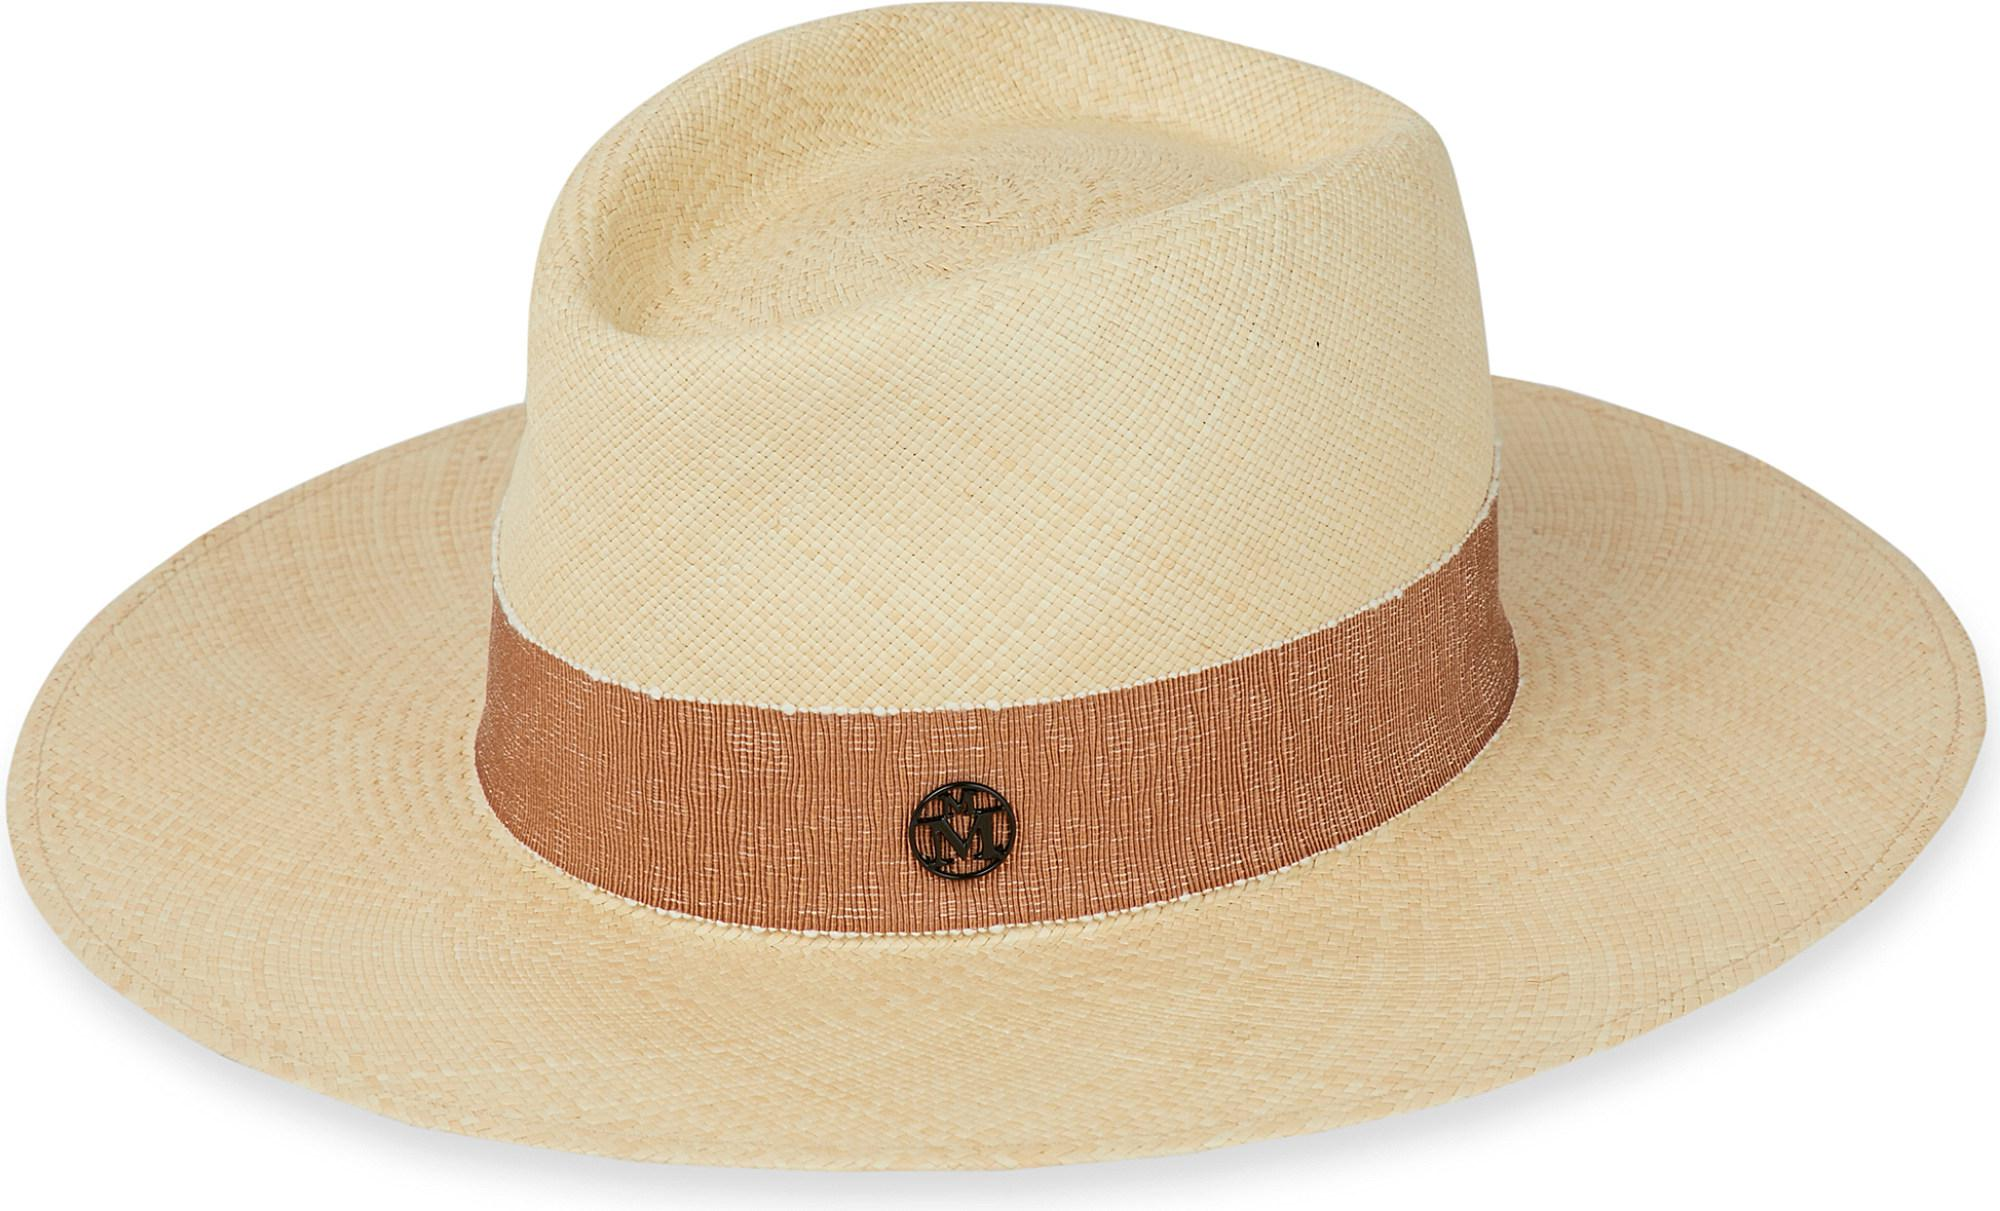 Lyst - Maison Michel Charles Cuenca Panama Straw Hat in Natural for Men 36e03c314ea